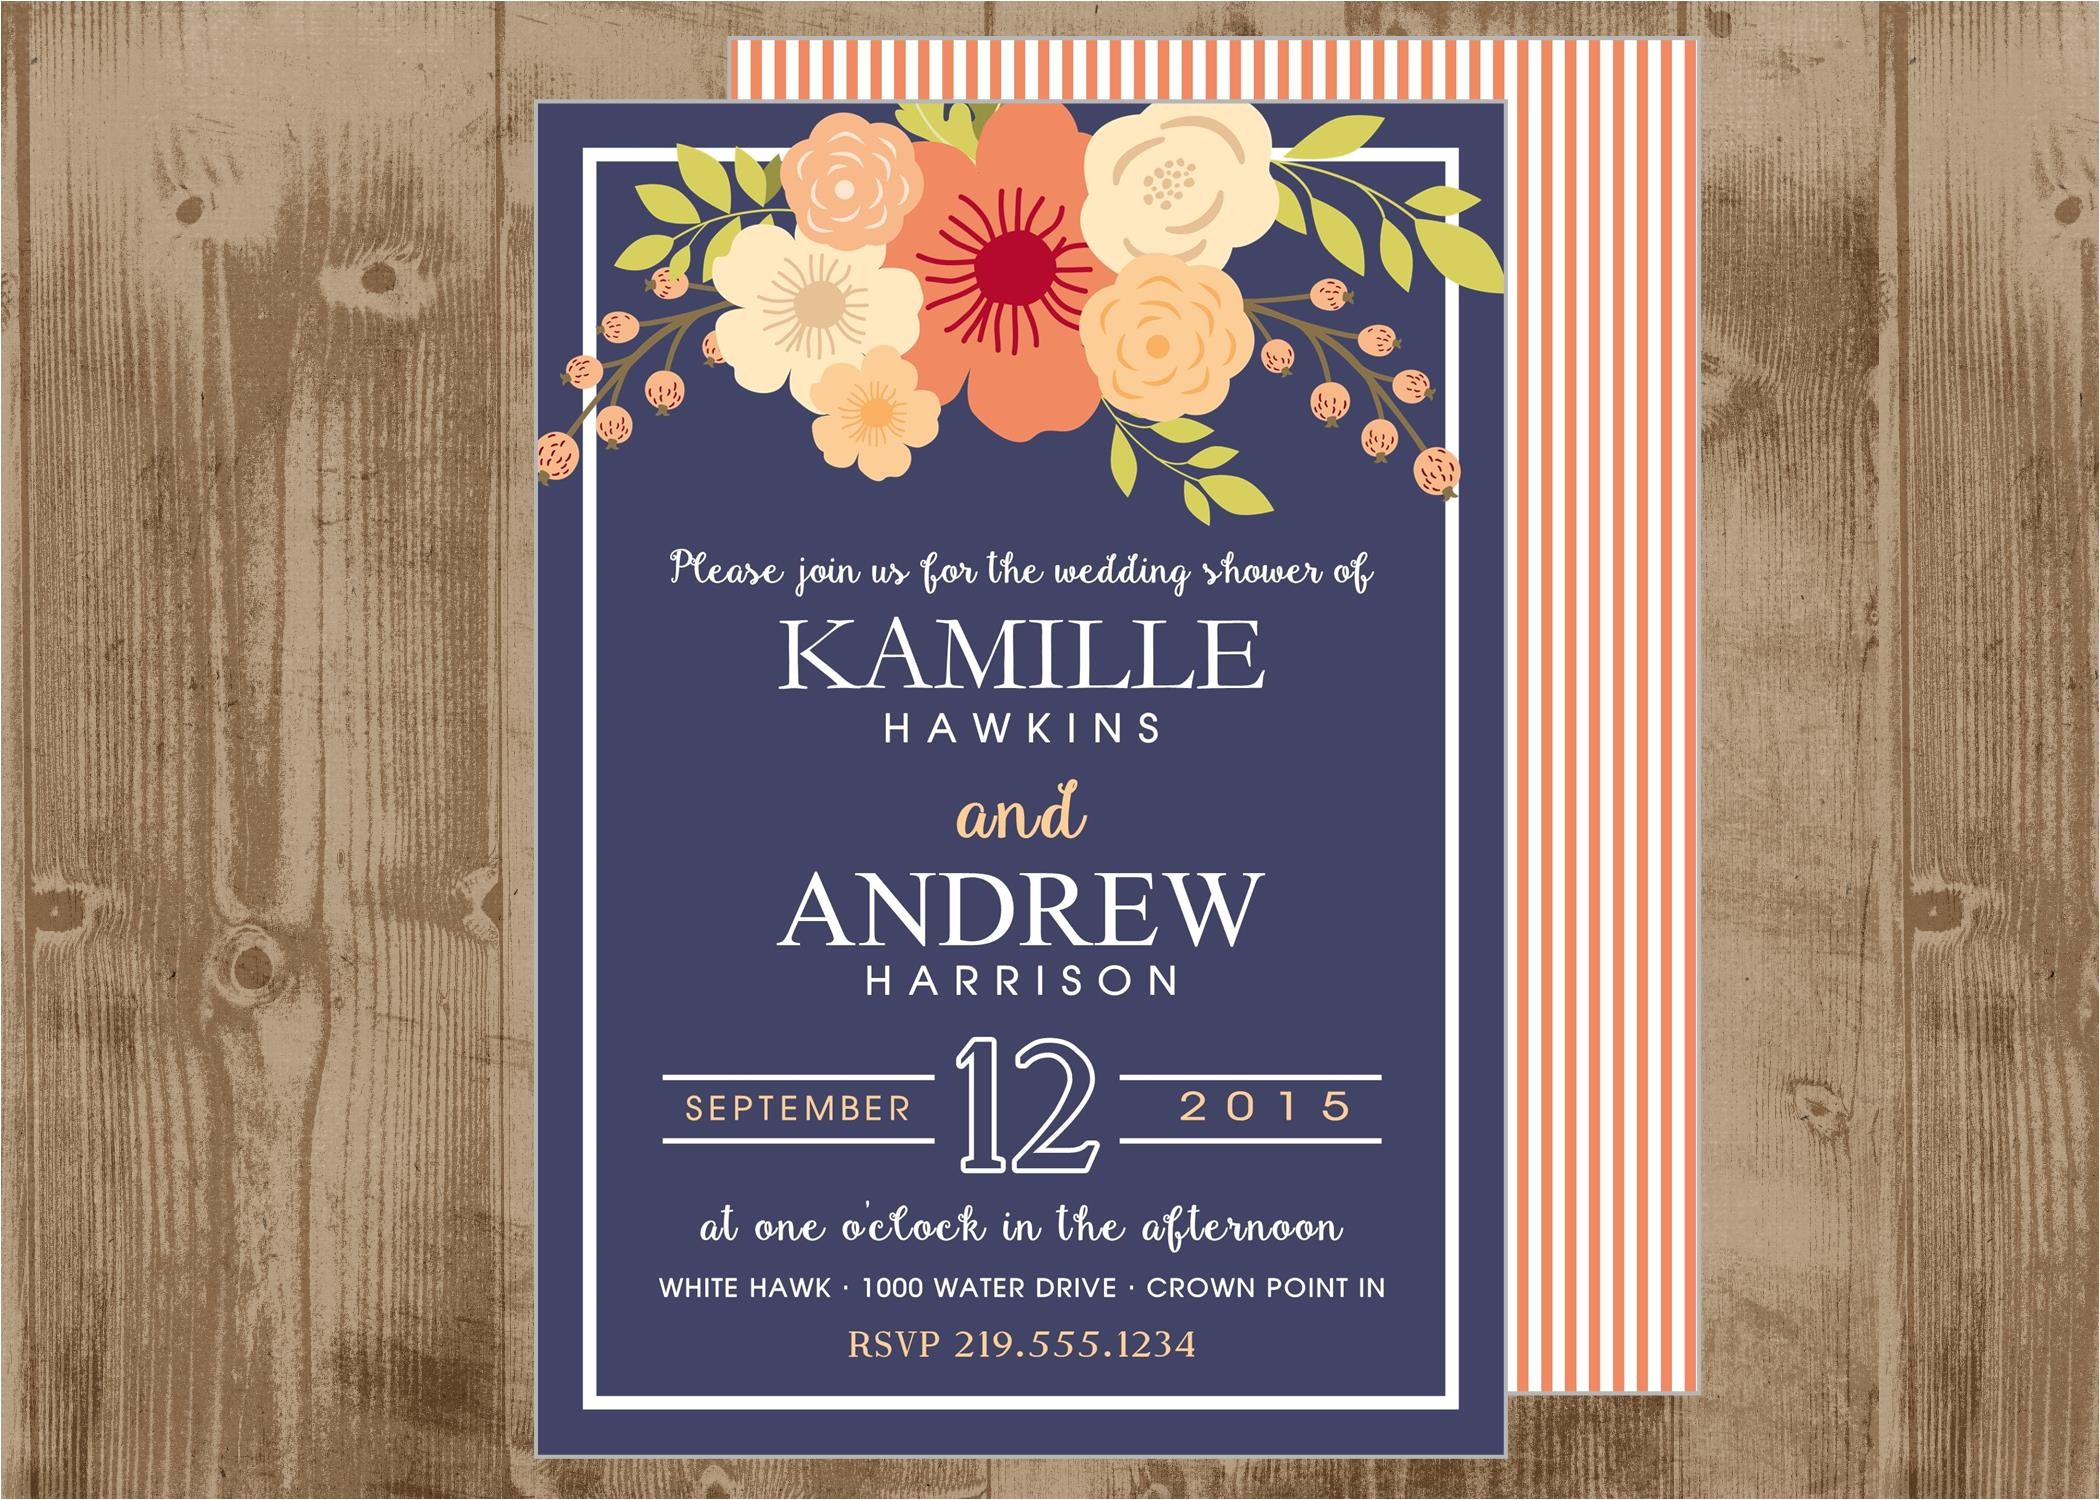 printable wedding bridal shower invitation in navy and peachy coral